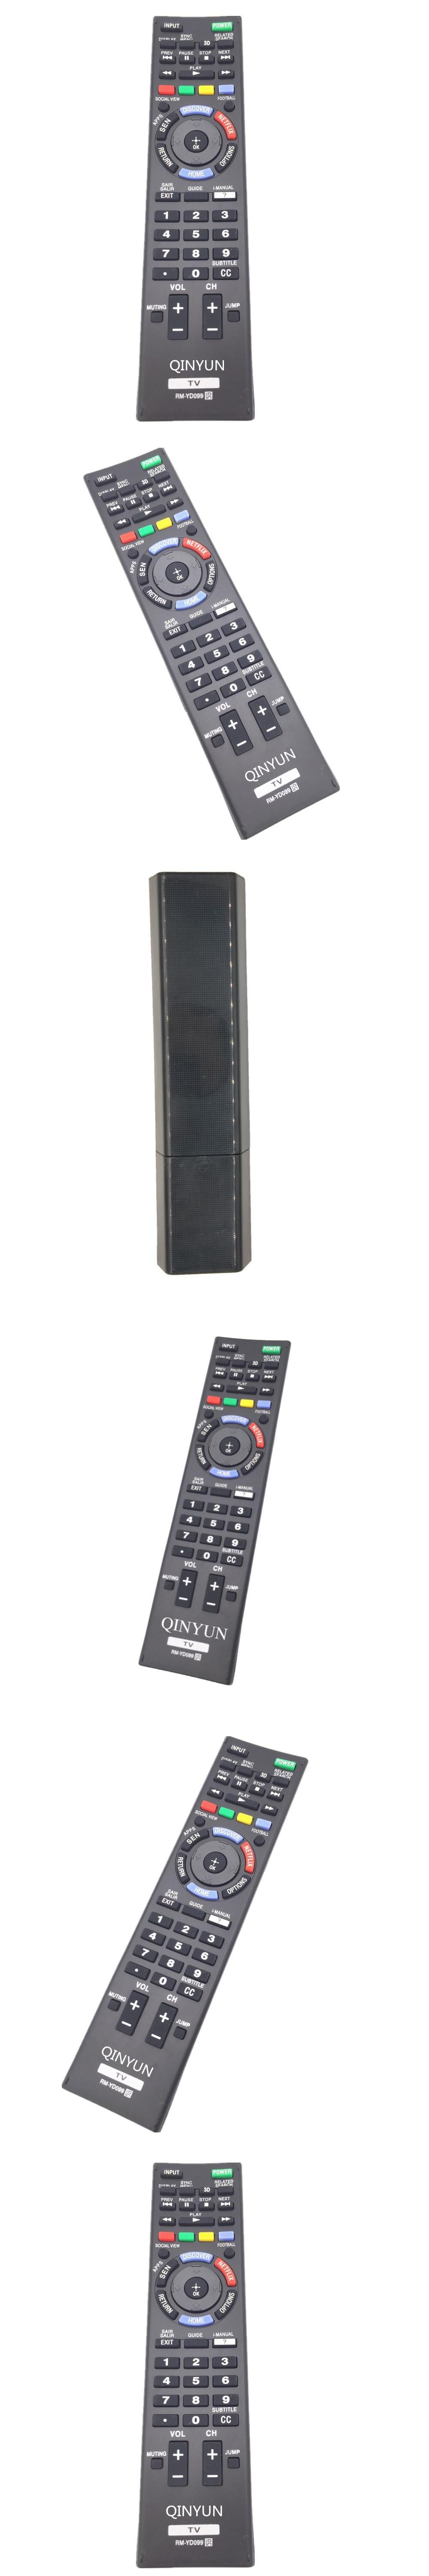 Rm Yd099 Remote Control For Sony Lcd Led Tv 14927144 Hdtv